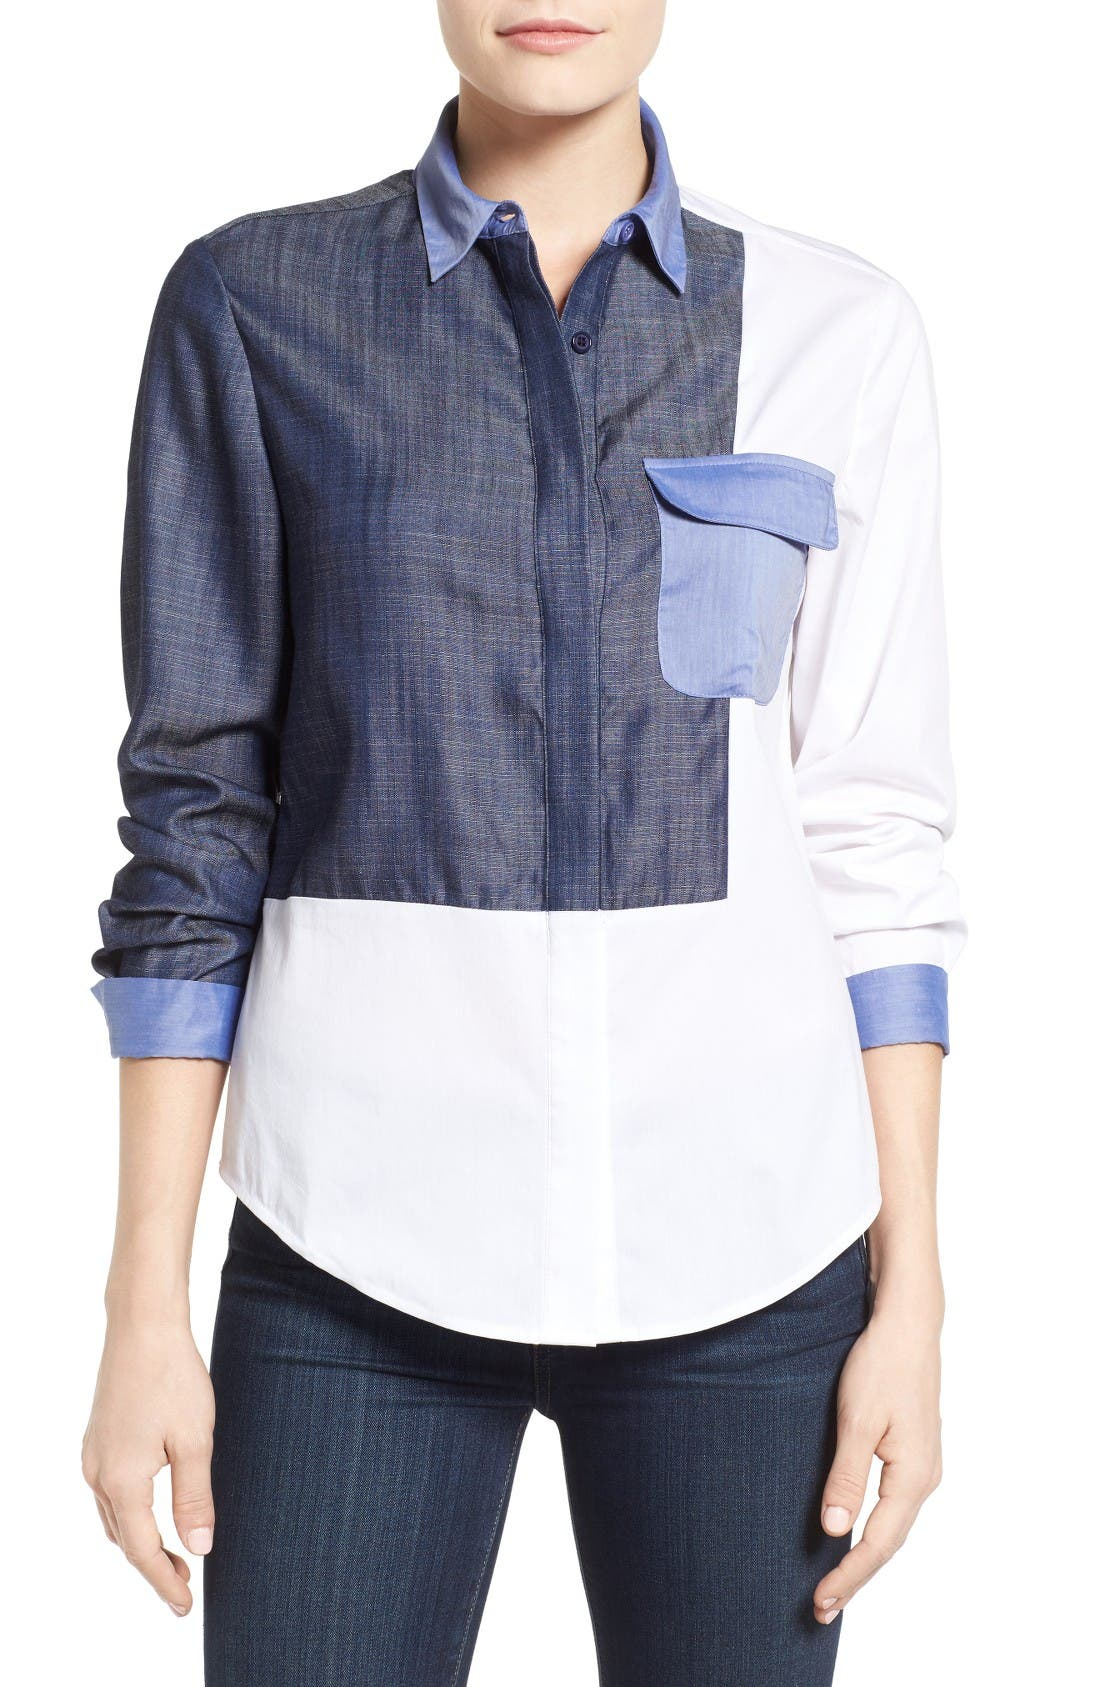 Alternate Image 1 Selected - Ivanka Trump Denim & Poplin Colorblock Shirt